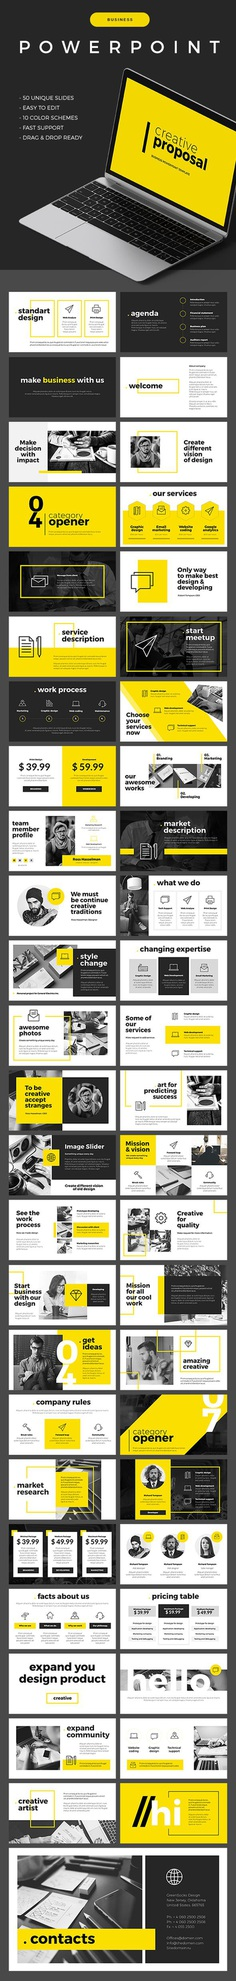 Business Powerpoint Template - Business PowerPoint Templates